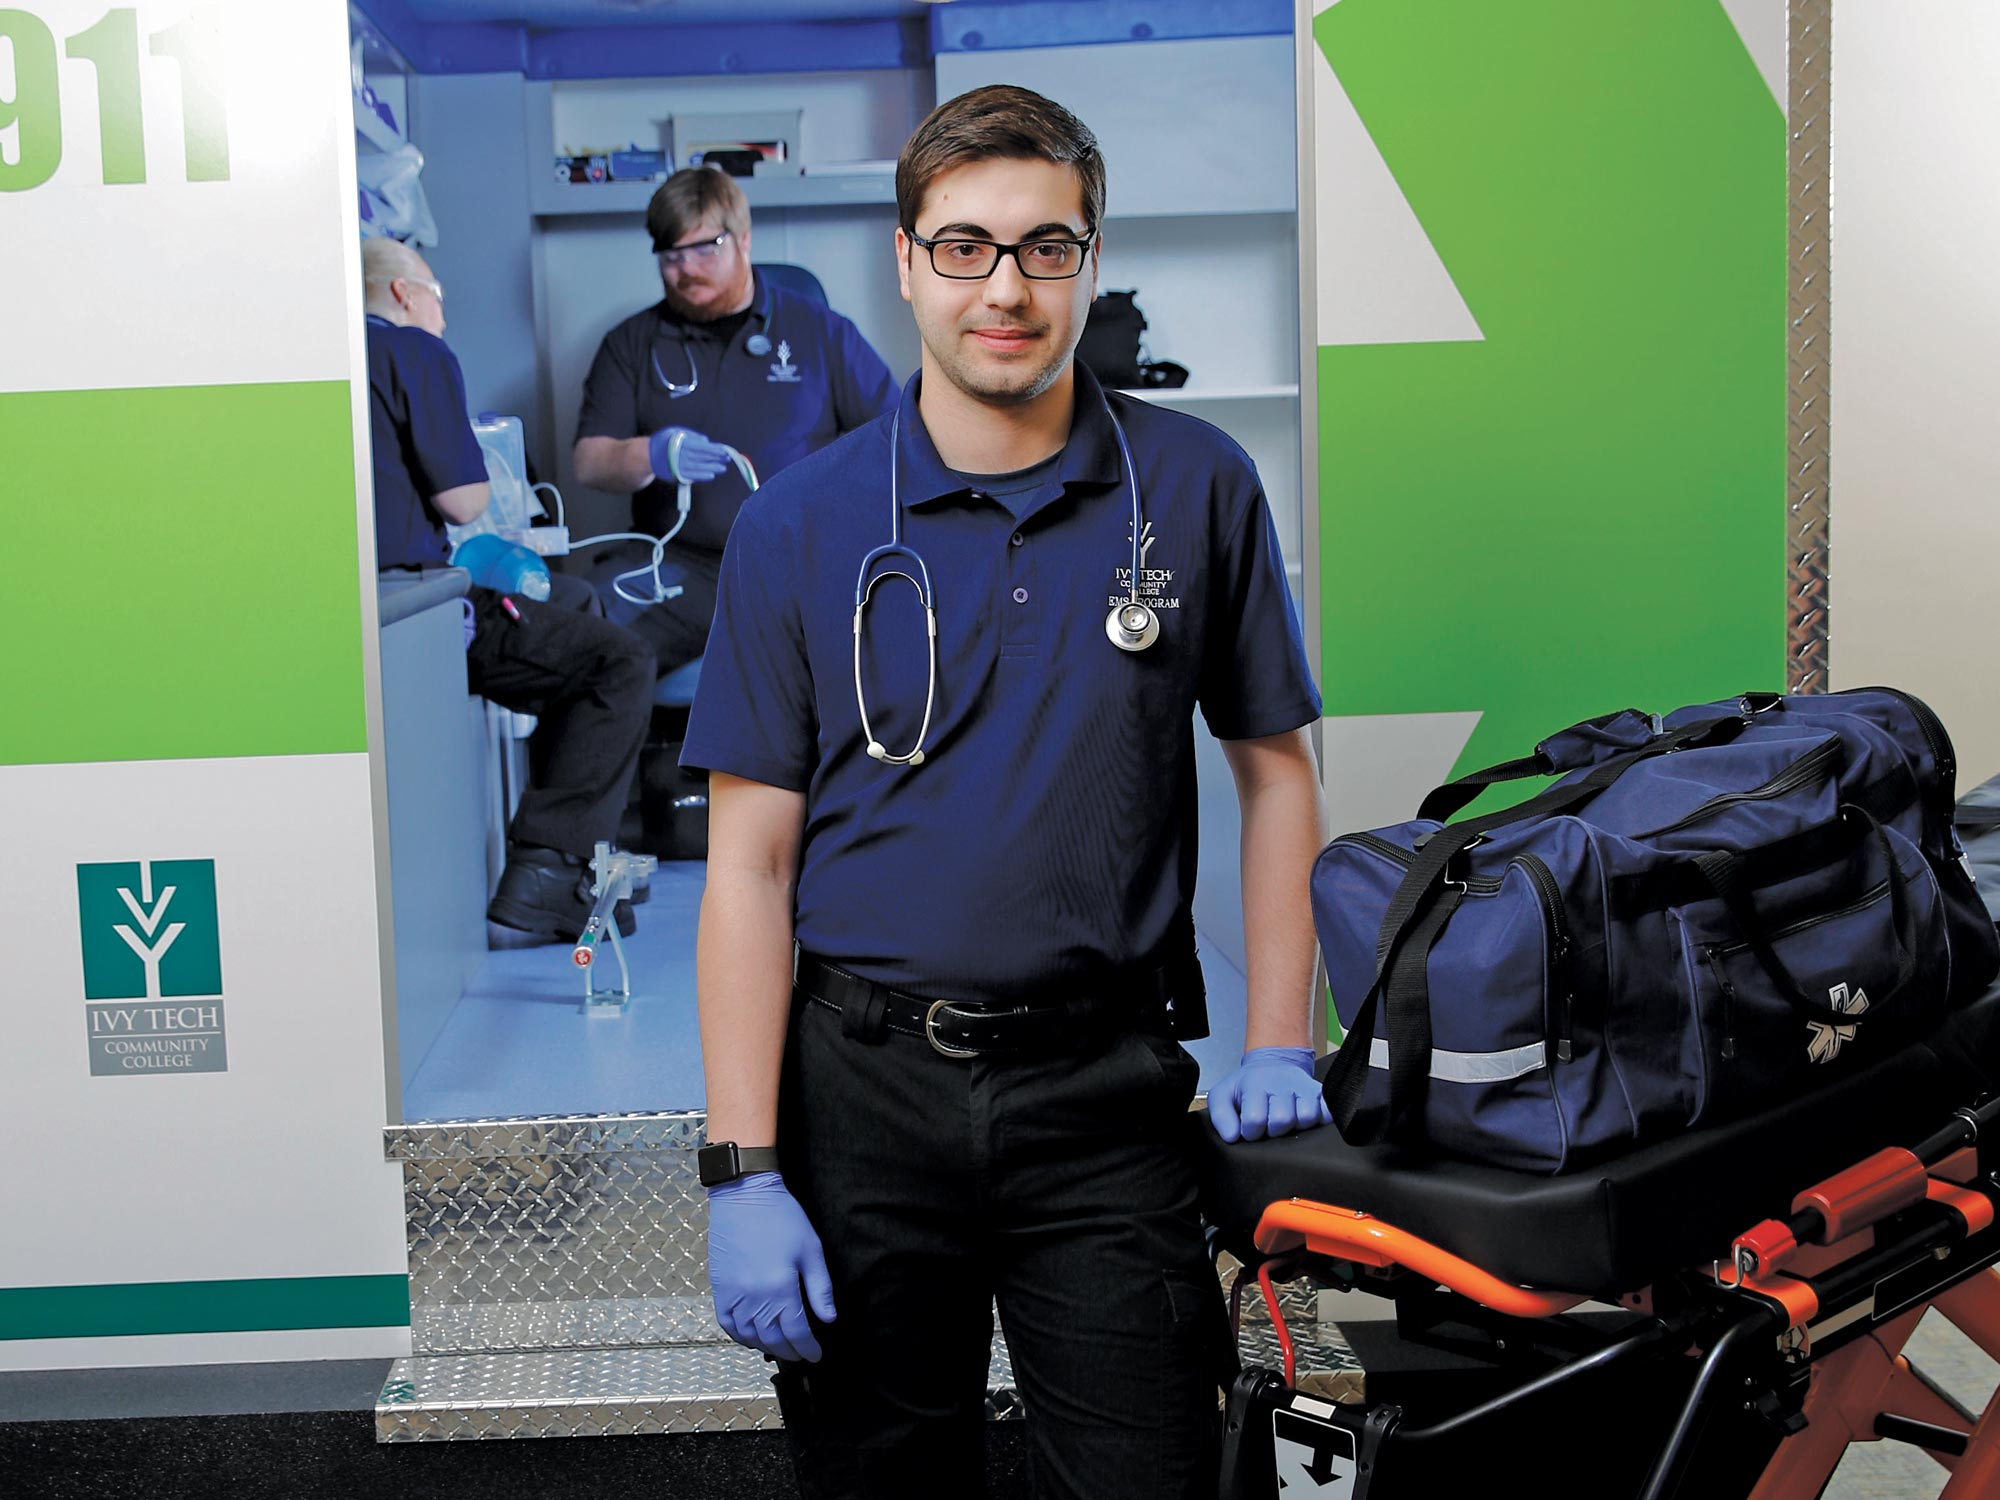 Male medical student standing next to ambulance